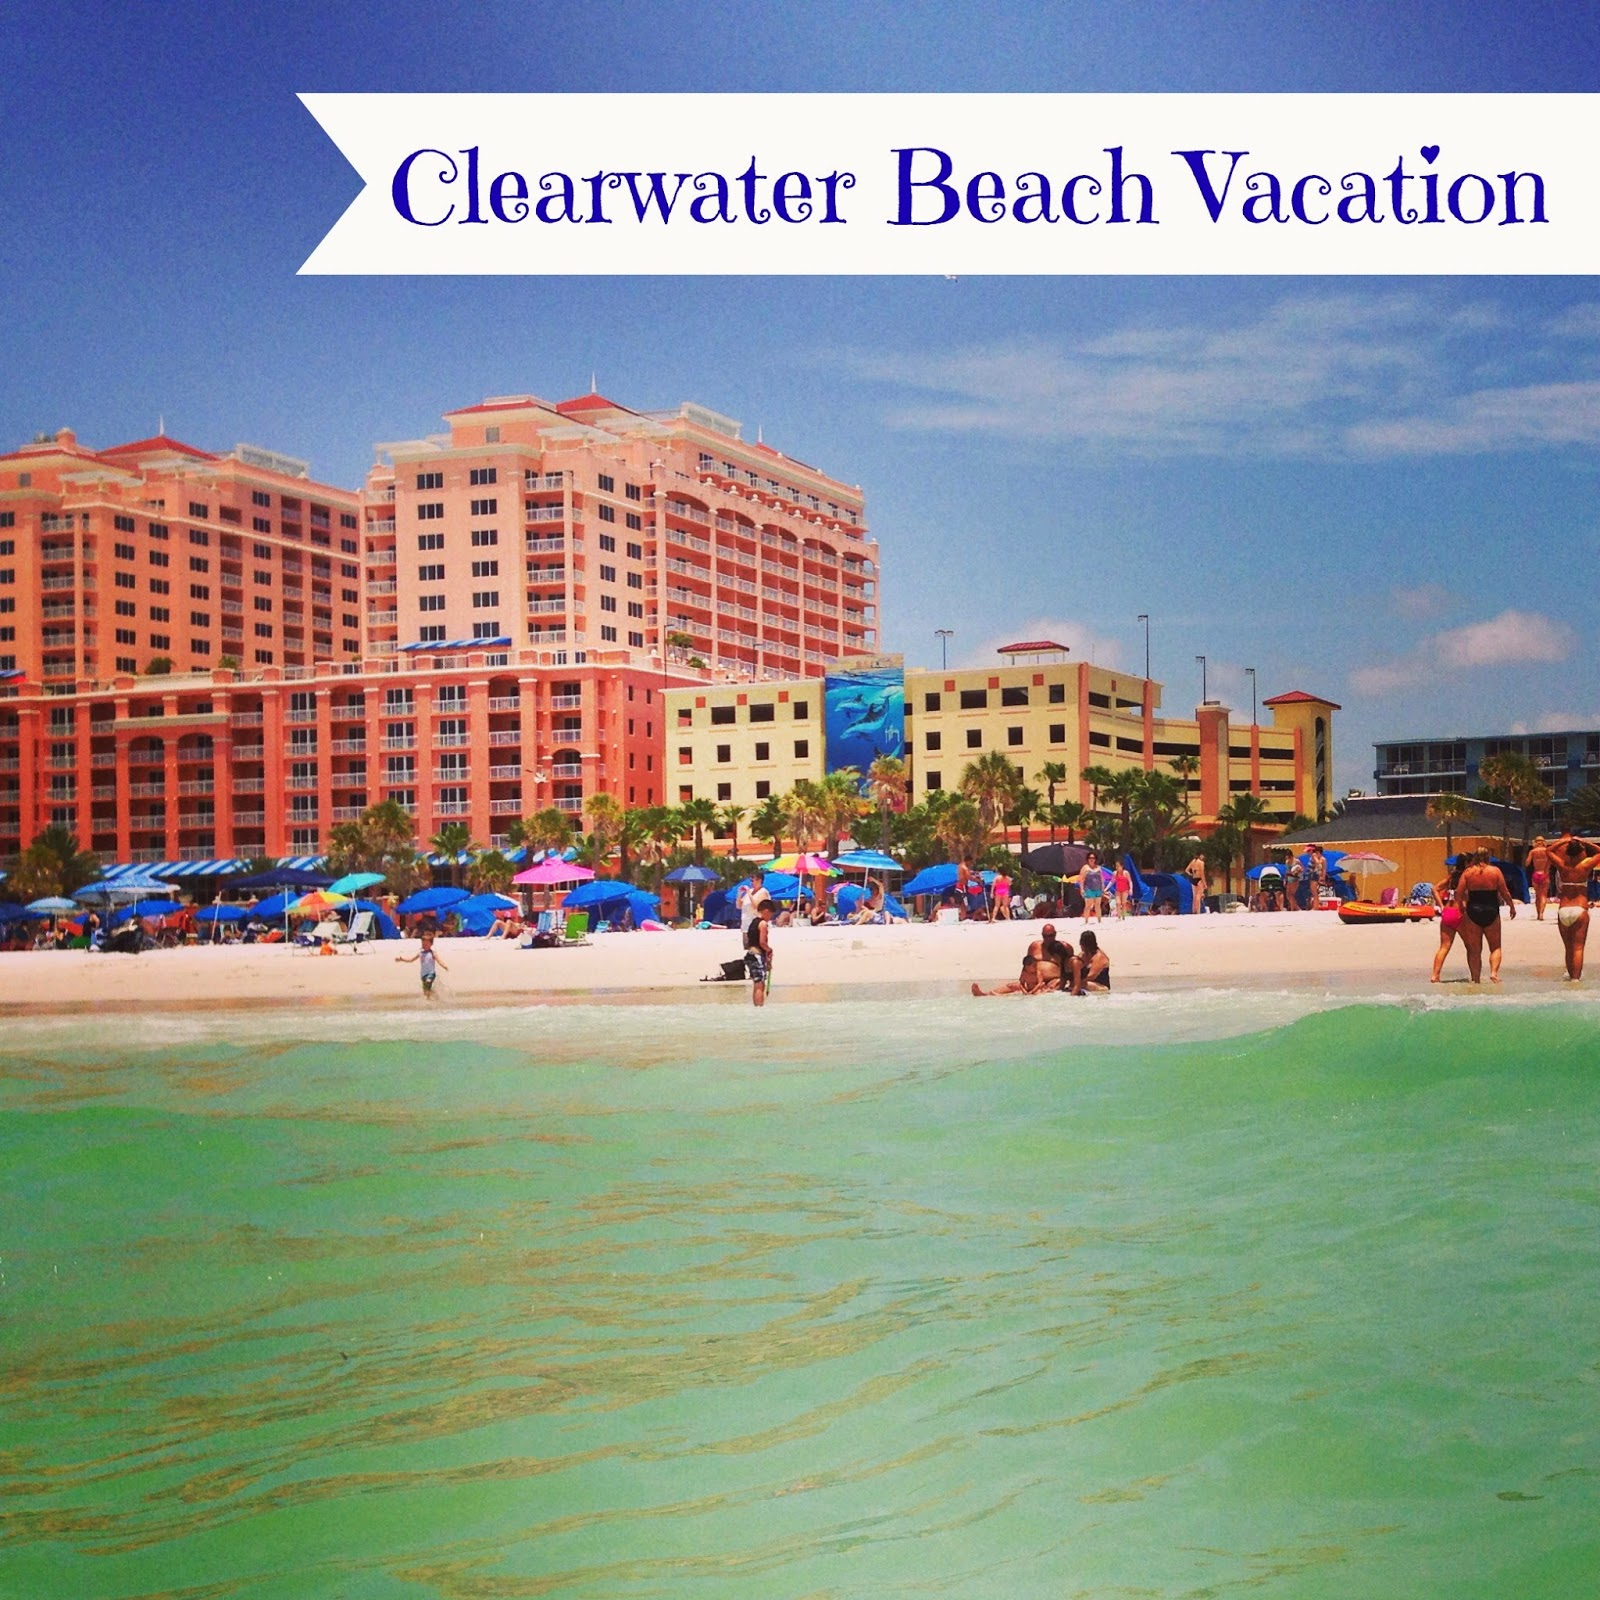 What Are Interesting Places To Visit In Florida: Clearwater Beach Florida With Kids